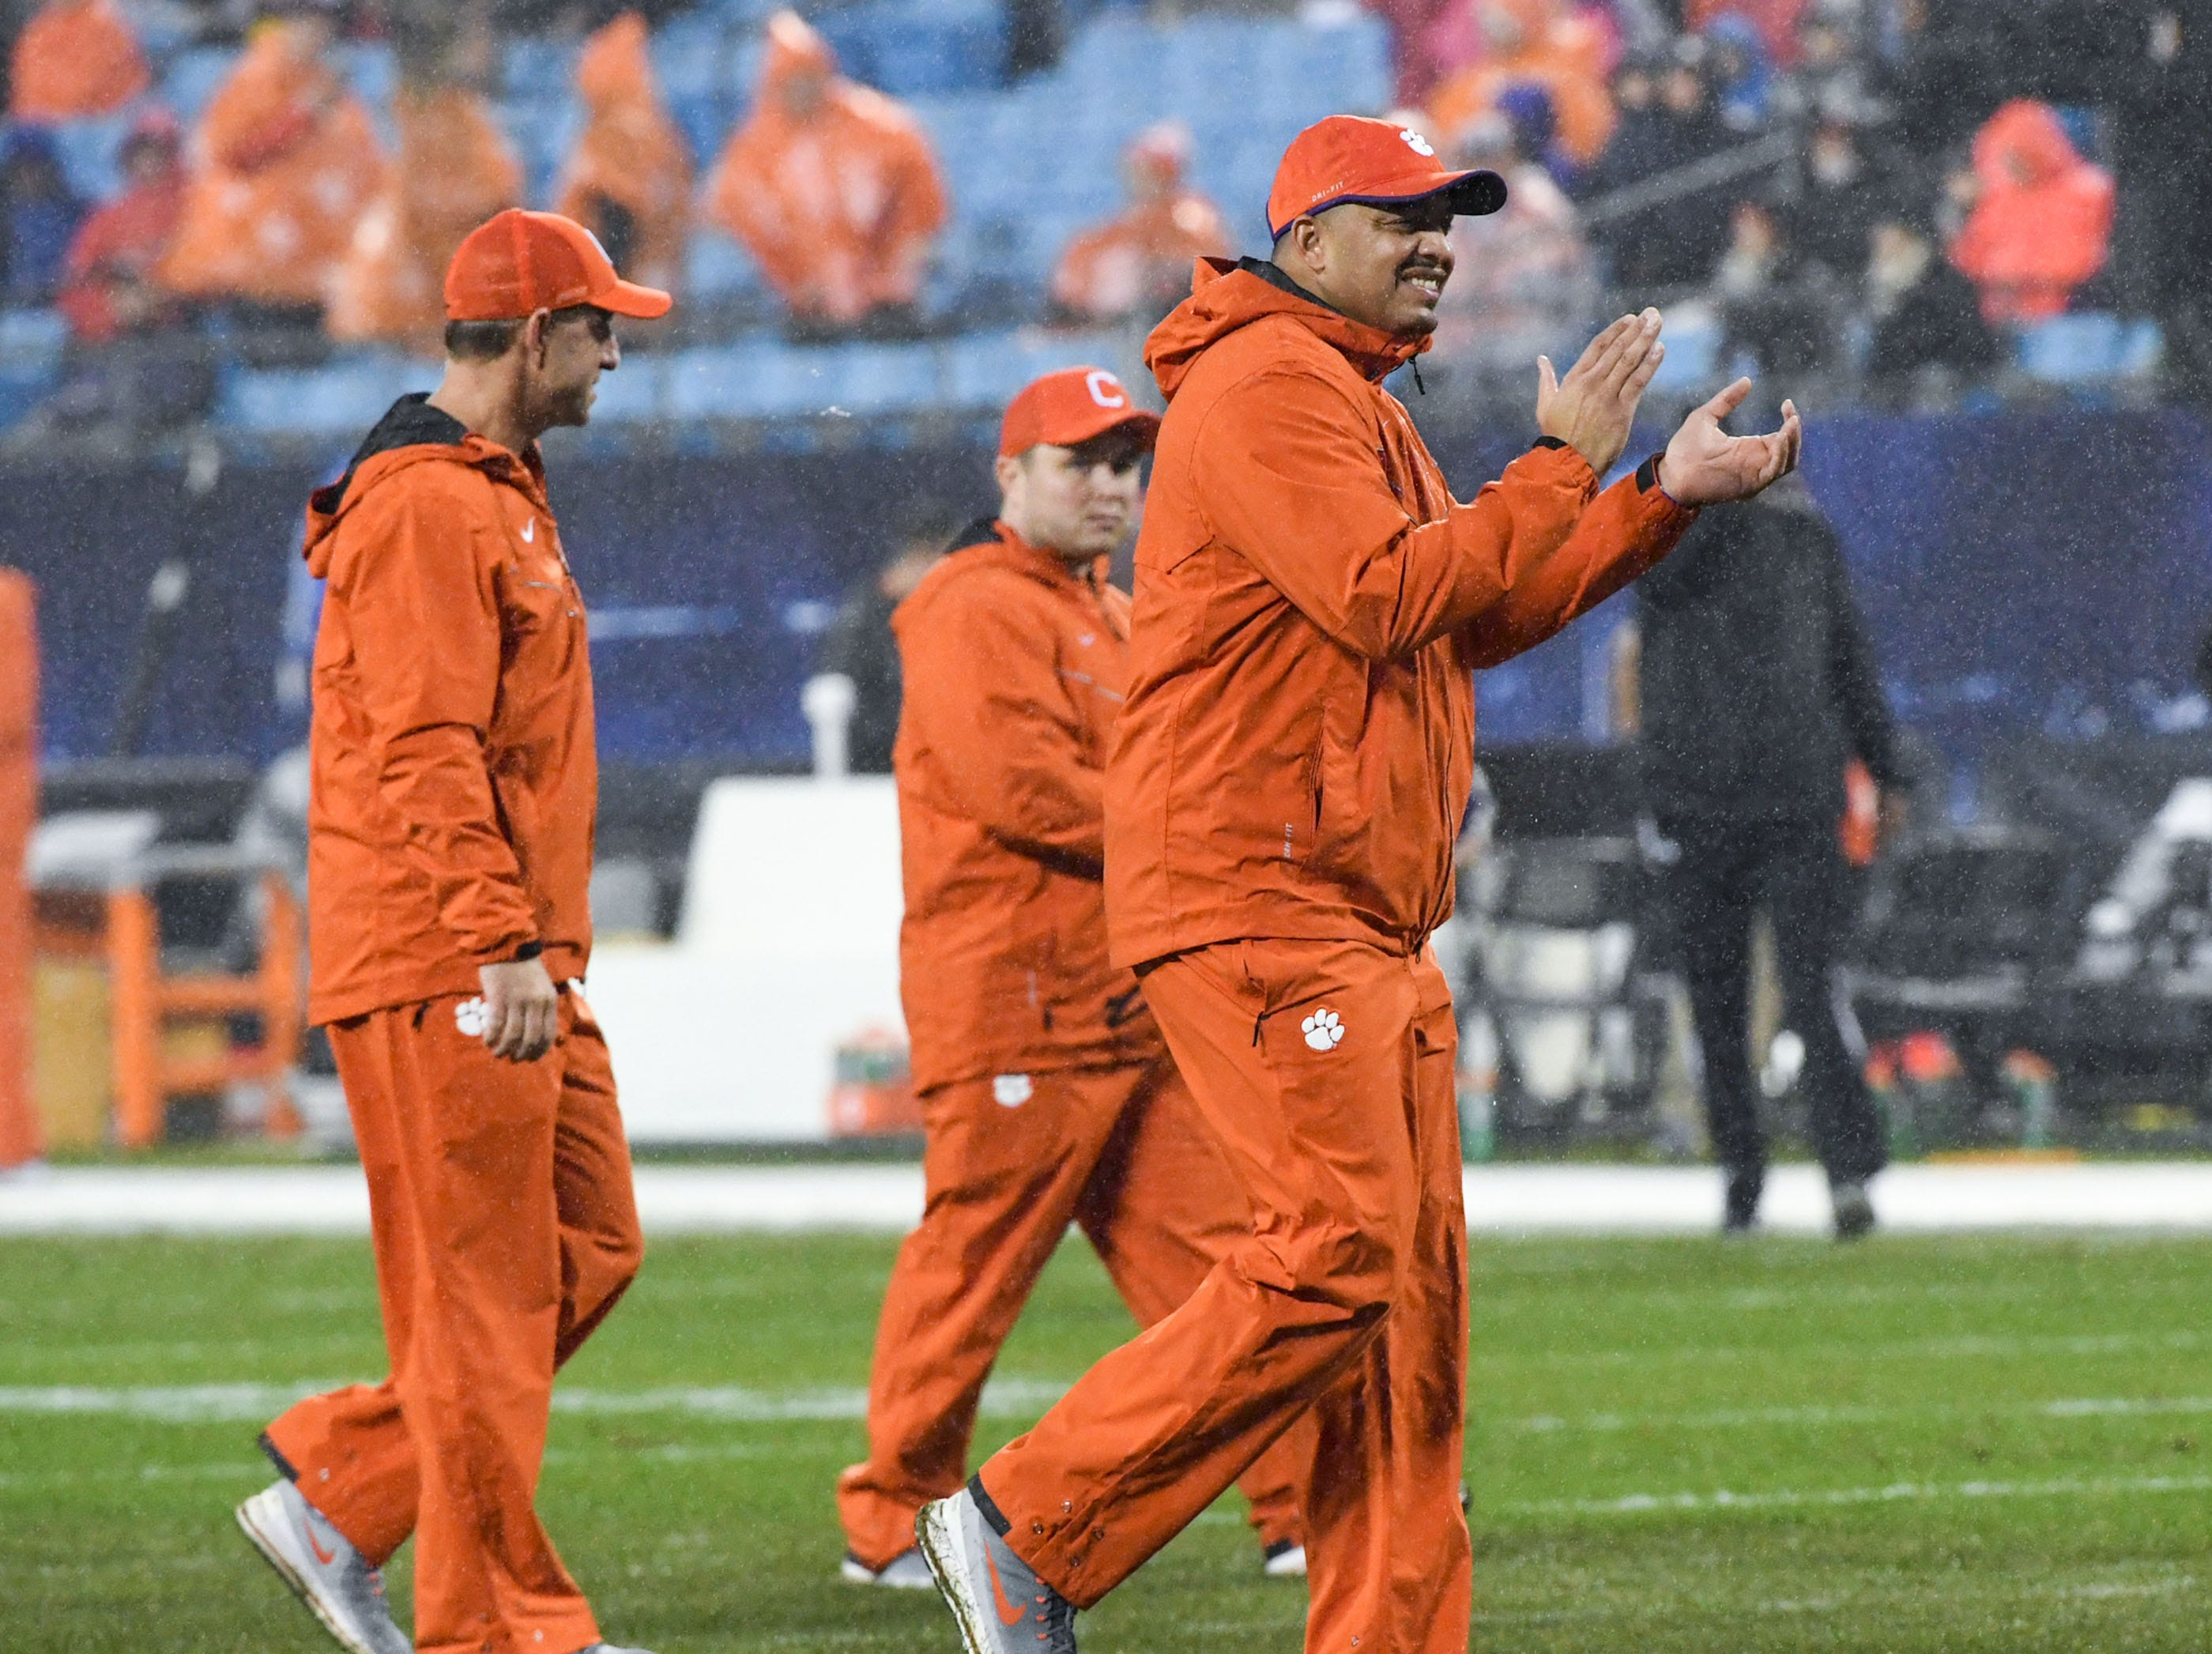 Clemson co-offensive coordinator Tony Elliott, right, claps near Clemson Head Coach Dabo Swinney, left, before the game of the Dr. Pepper ACC football championship at Bank of America Stadium in Charlotte, N.C. on Saturday, December 1, 2018.